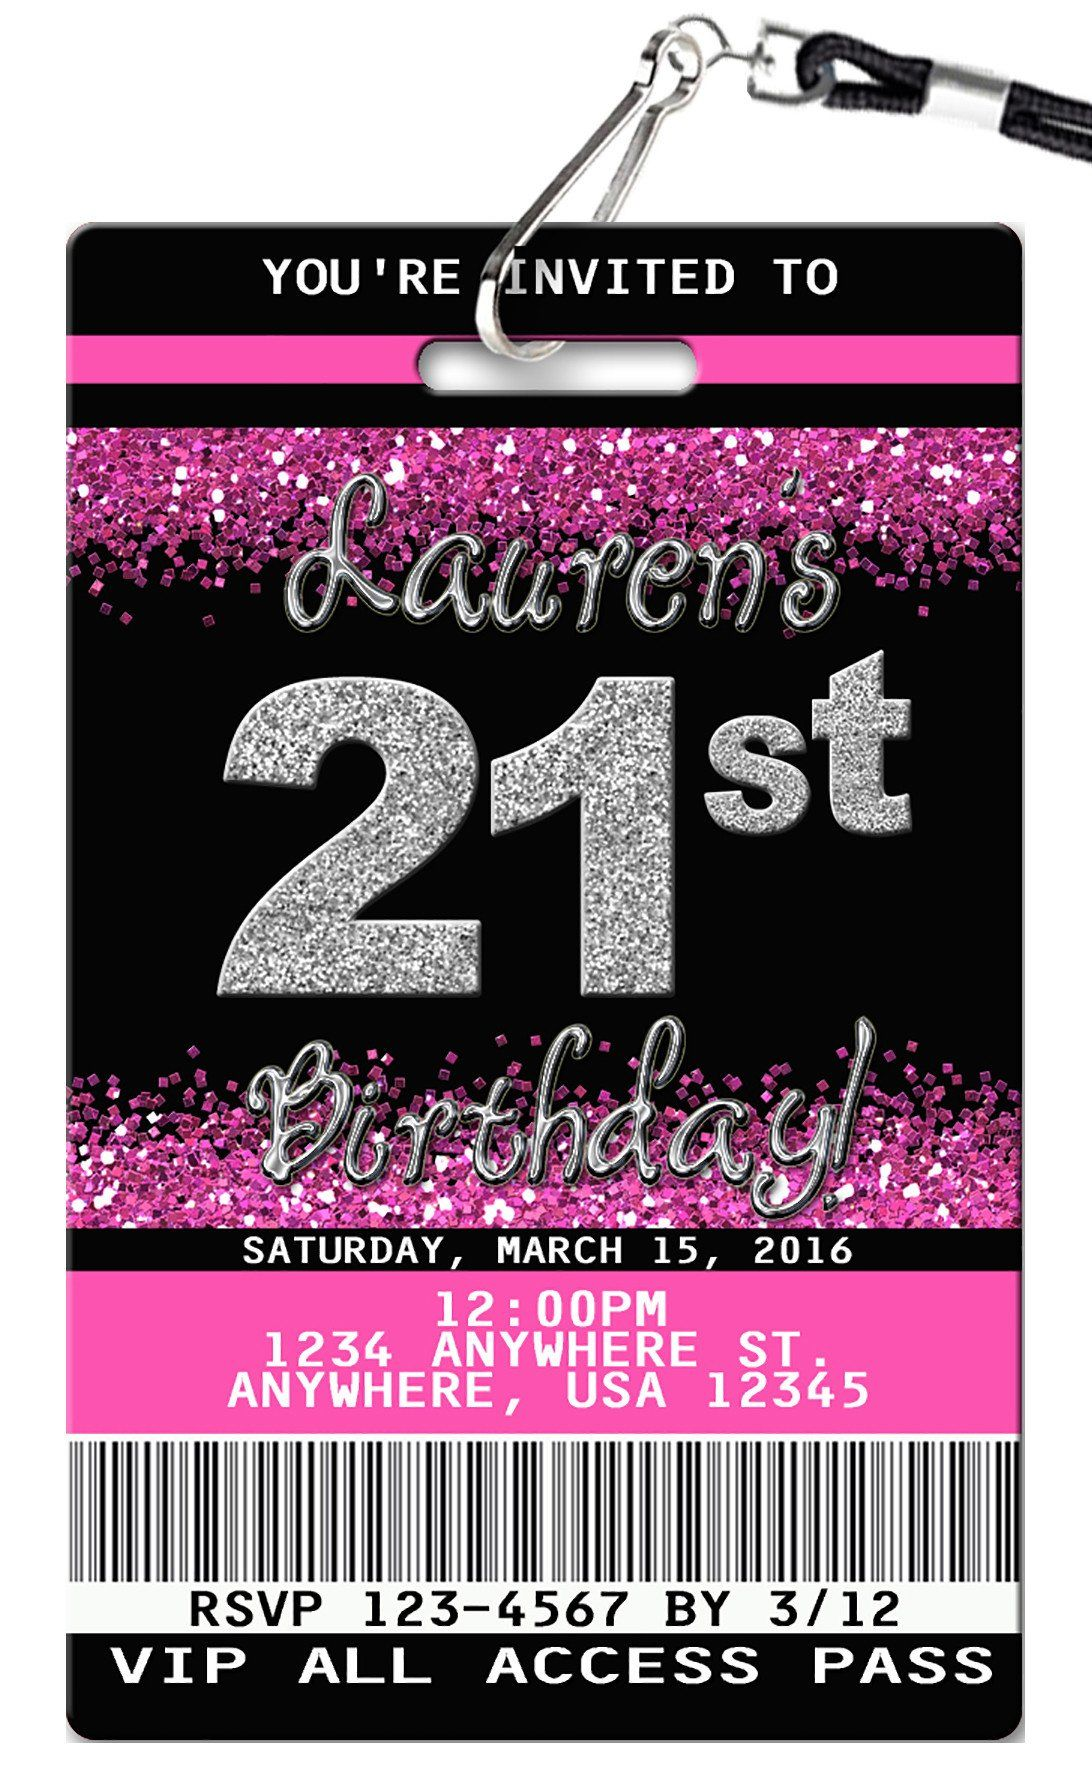 21st birthday invitation in 2018 21st birthday pinterest